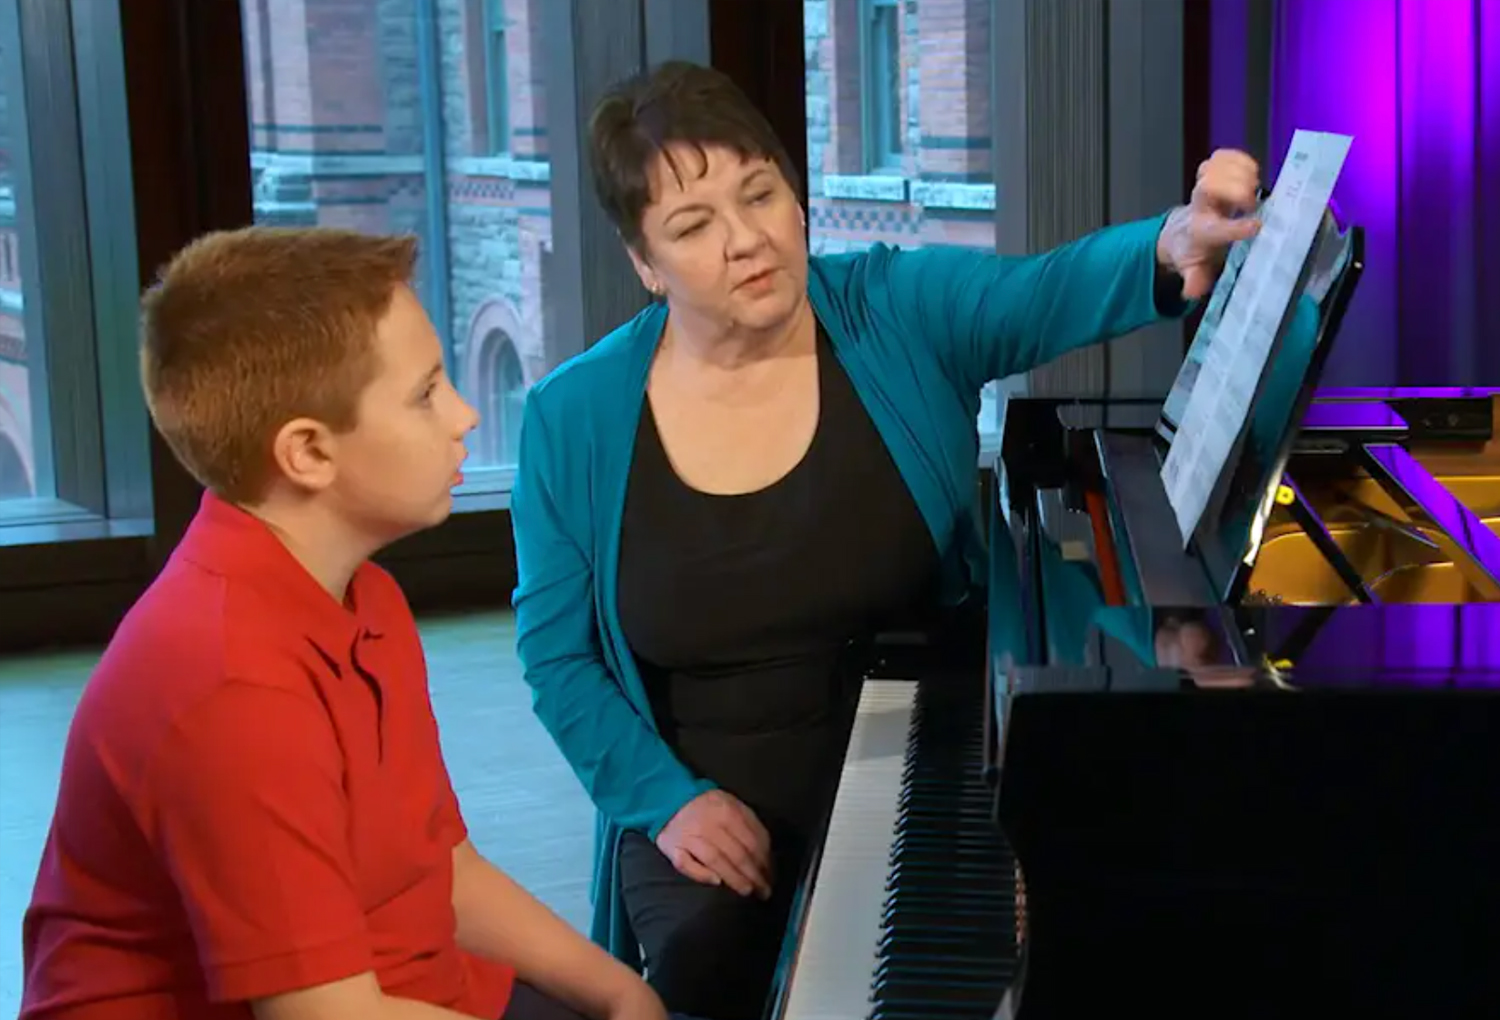 Engaging Students in Sight Reading